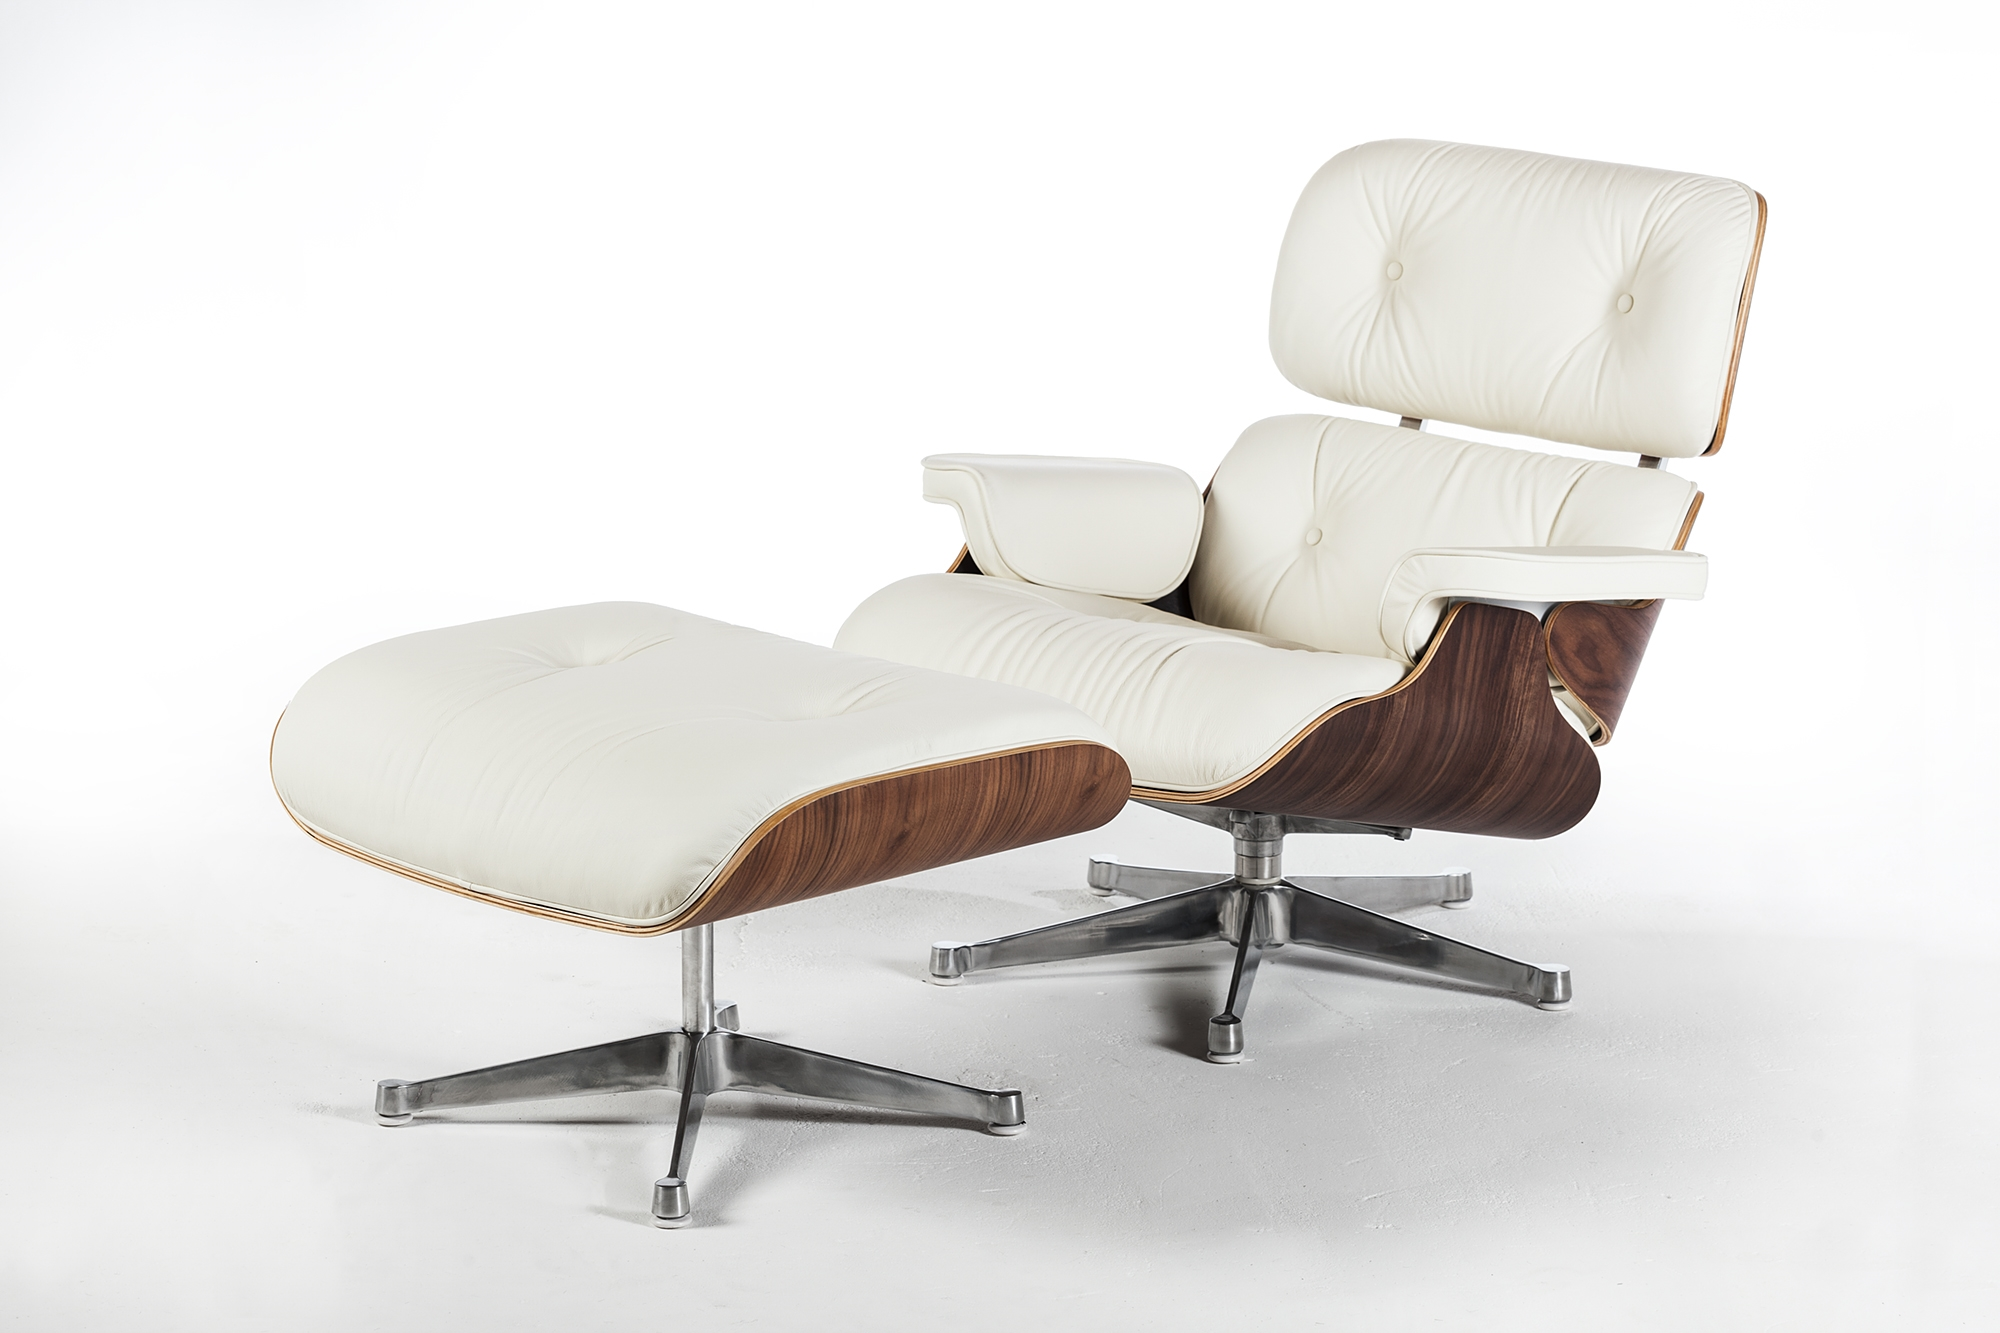 Swell Mid Century Style Lounge Chair And Ottoman White Leather Evergreenethics Interior Chair Design Evergreenethicsorg